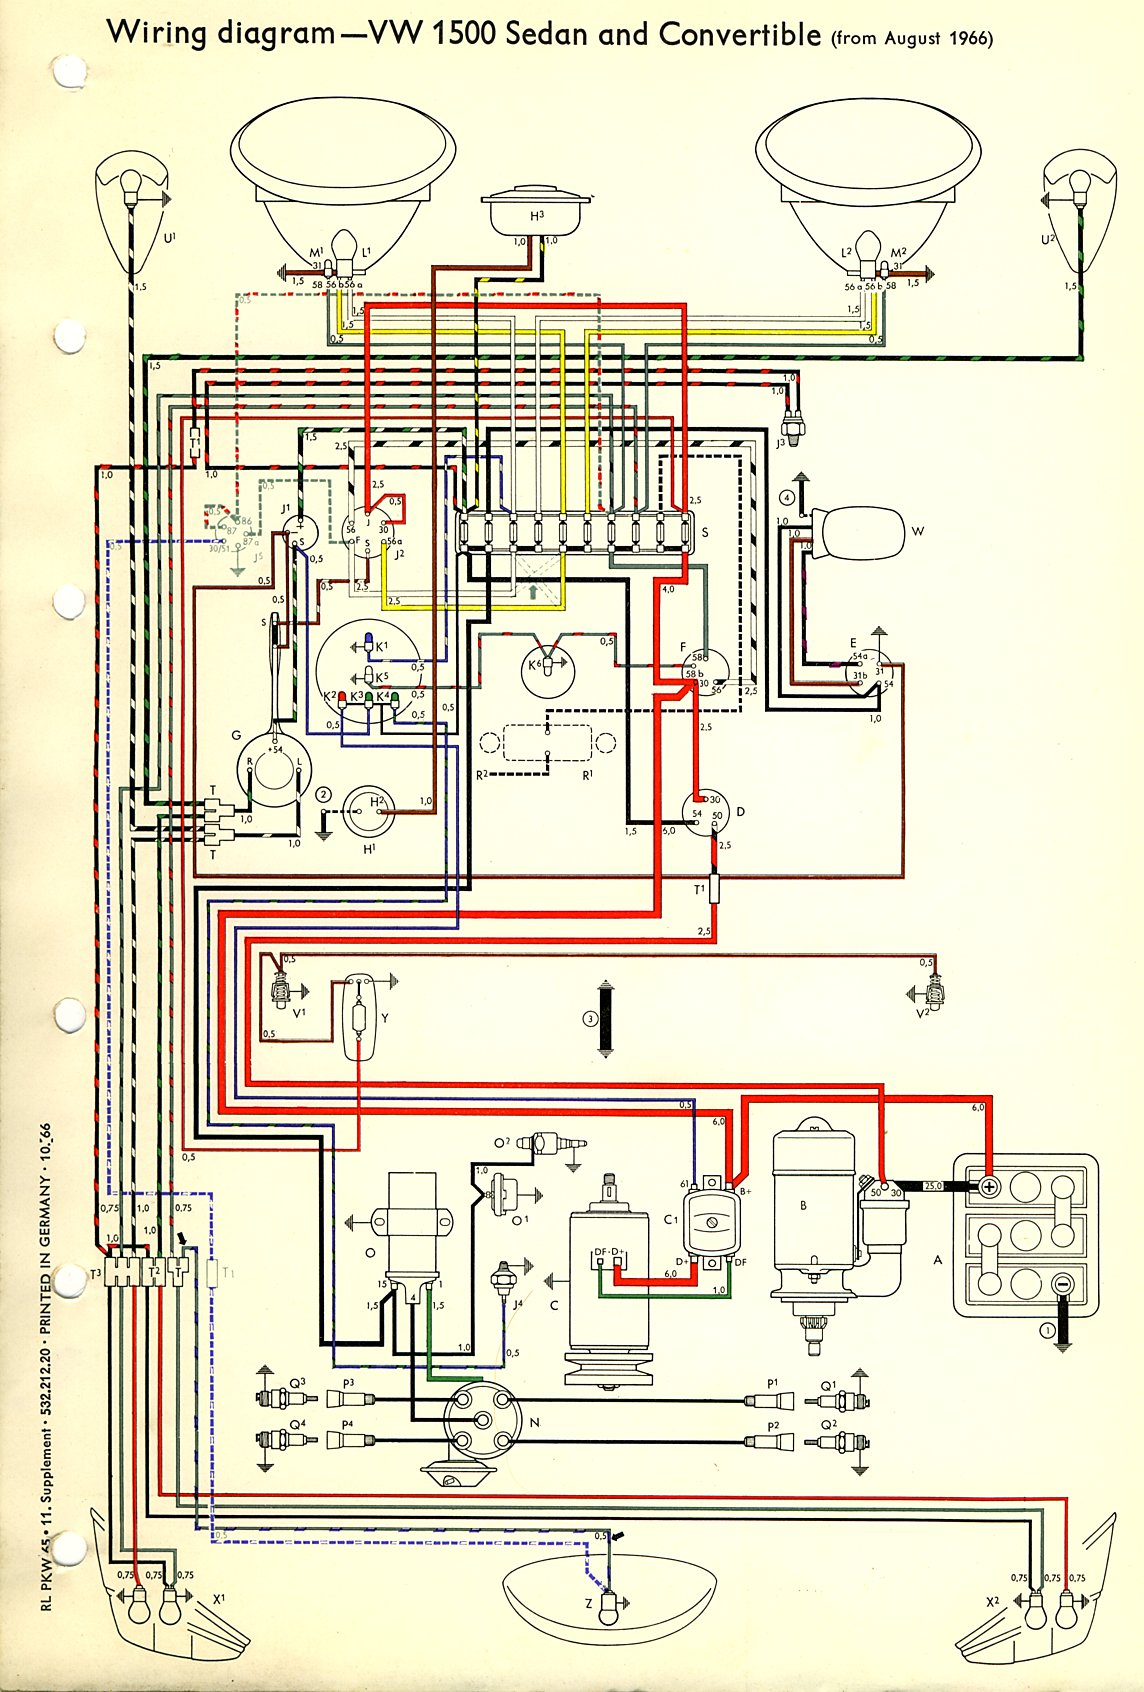 bug_67 1949 vw wiring diagram on 1949 download wirning diagrams 1965 vw beetle wiring diagram at mifinder.co